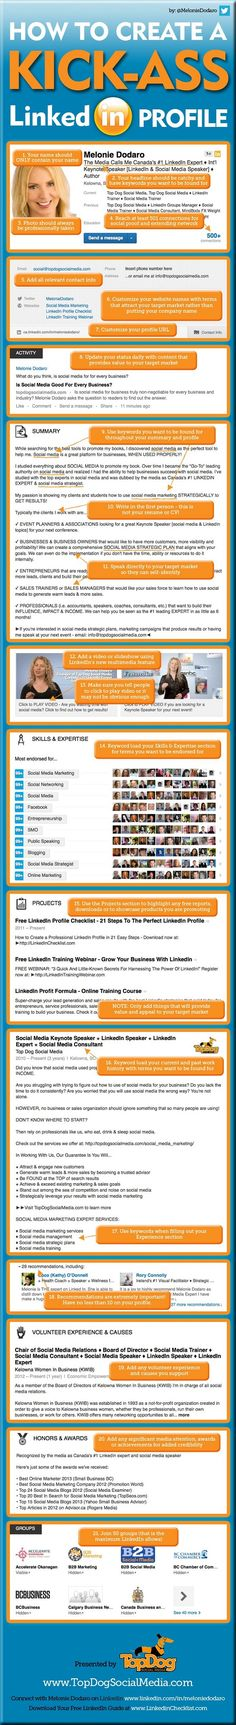 How to create a kick-ass Lindekin profile, by topdogsocialmedia.com